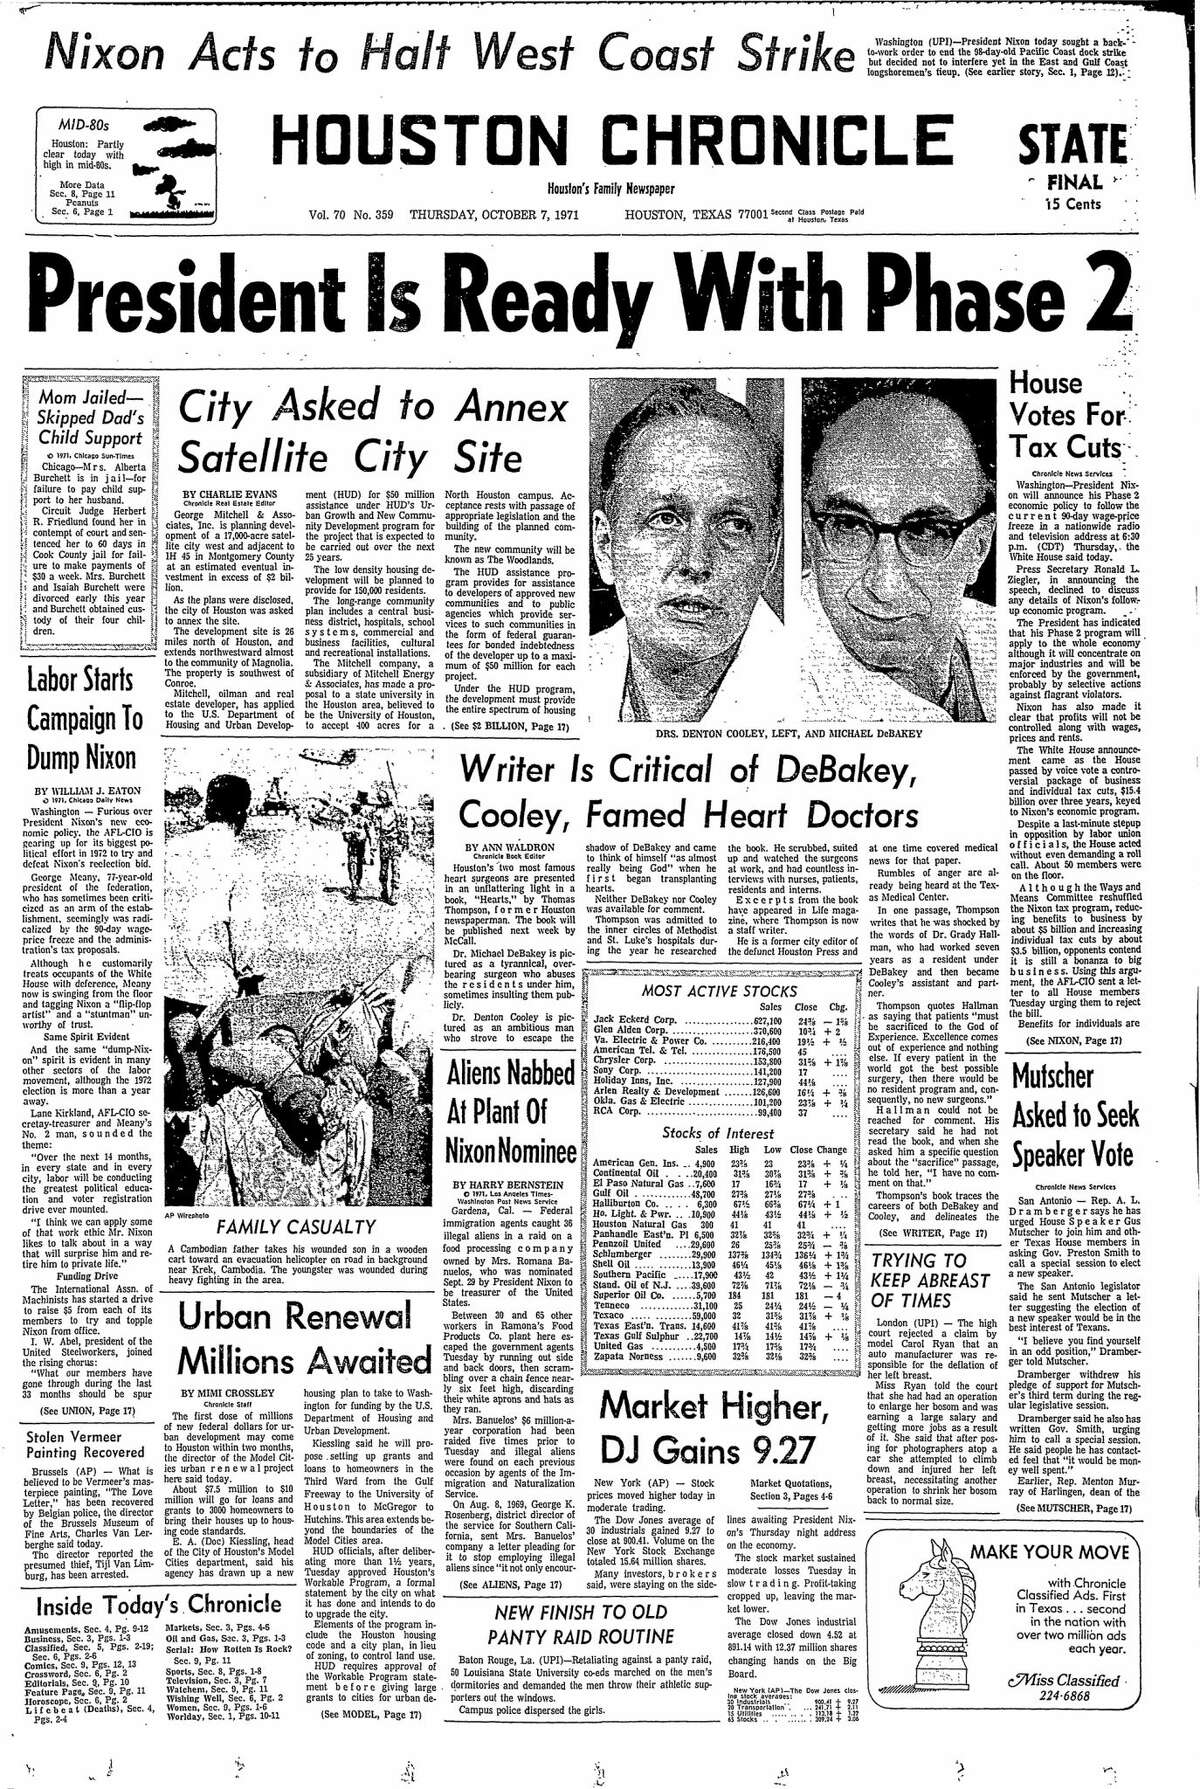 Houston Chronicle front page for Oct. 7, 1971.